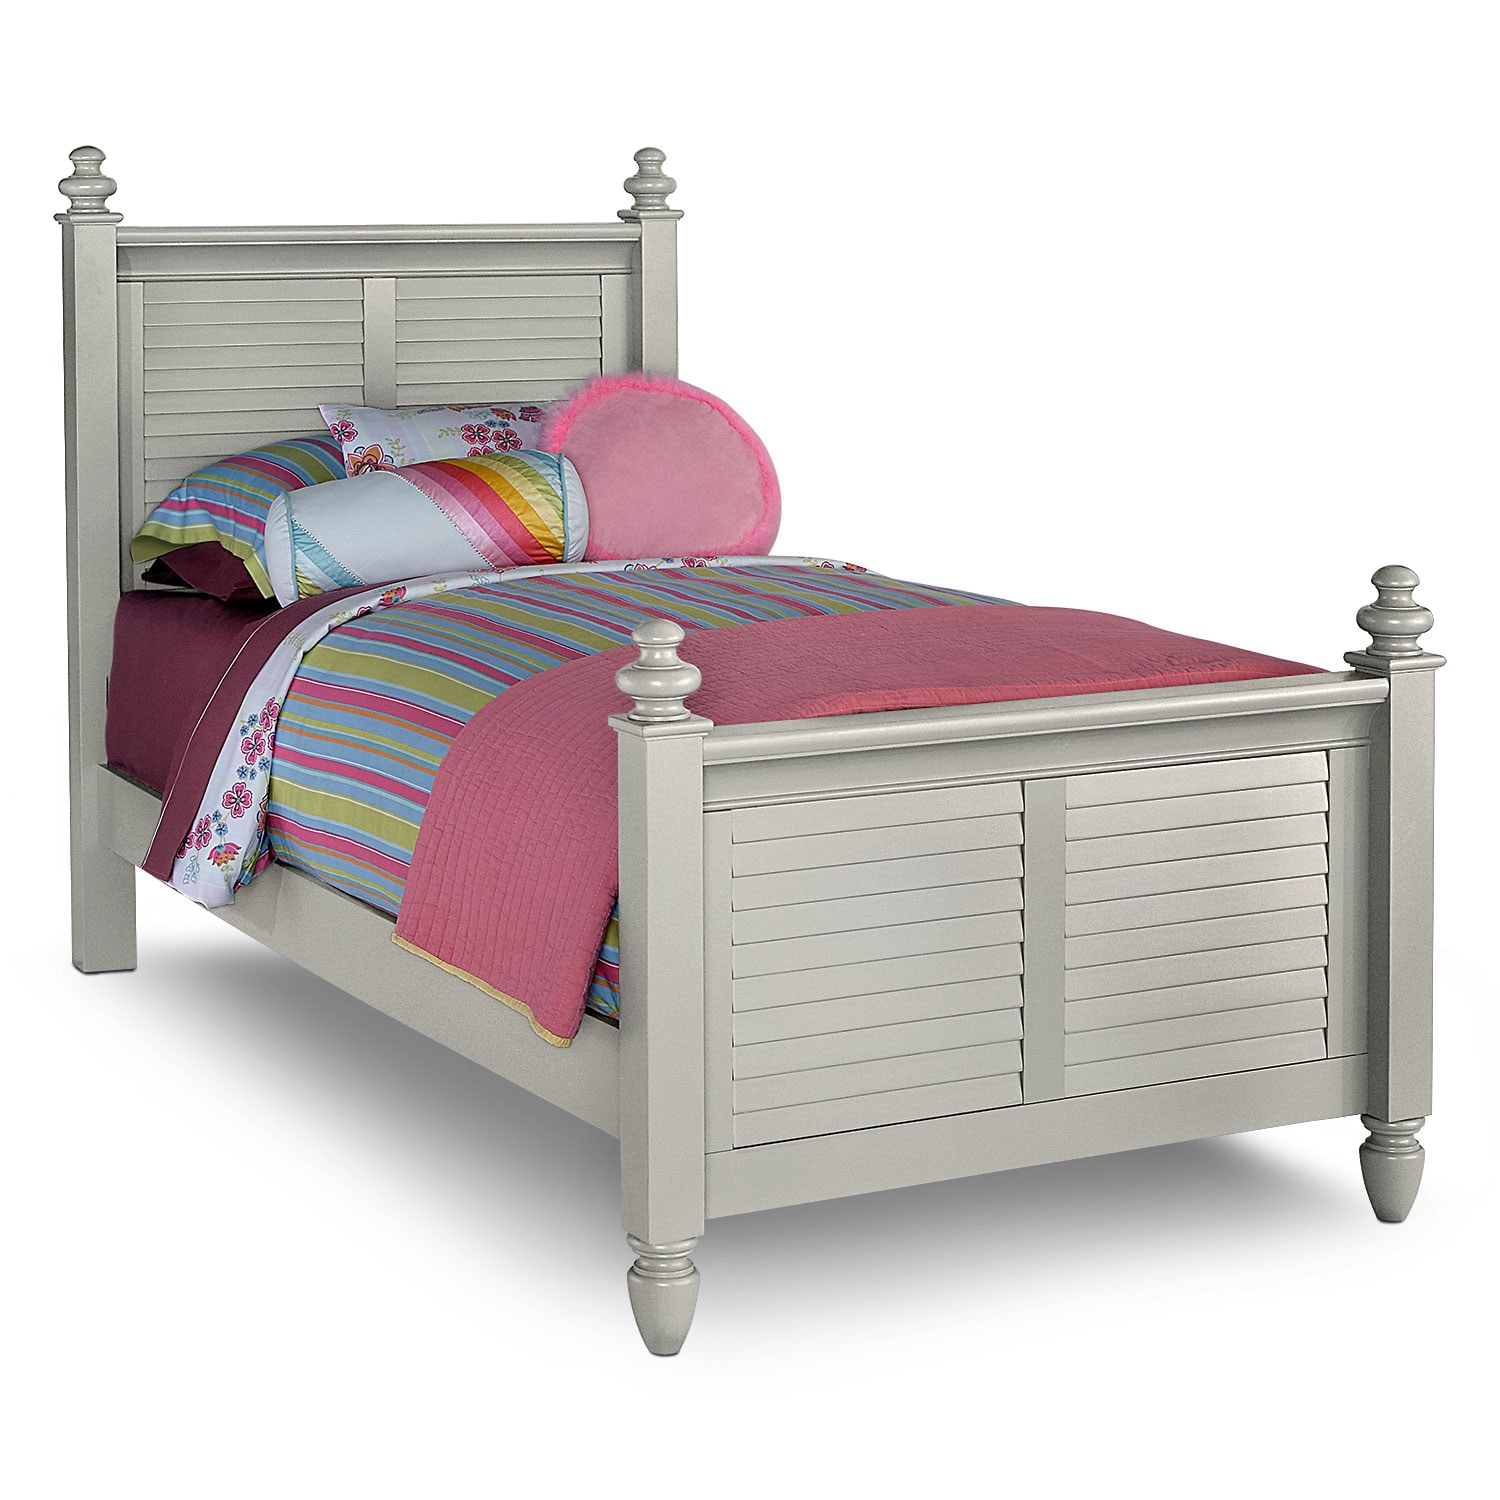 Seaside Full Bed Gray Value City Furniture And Mattresses